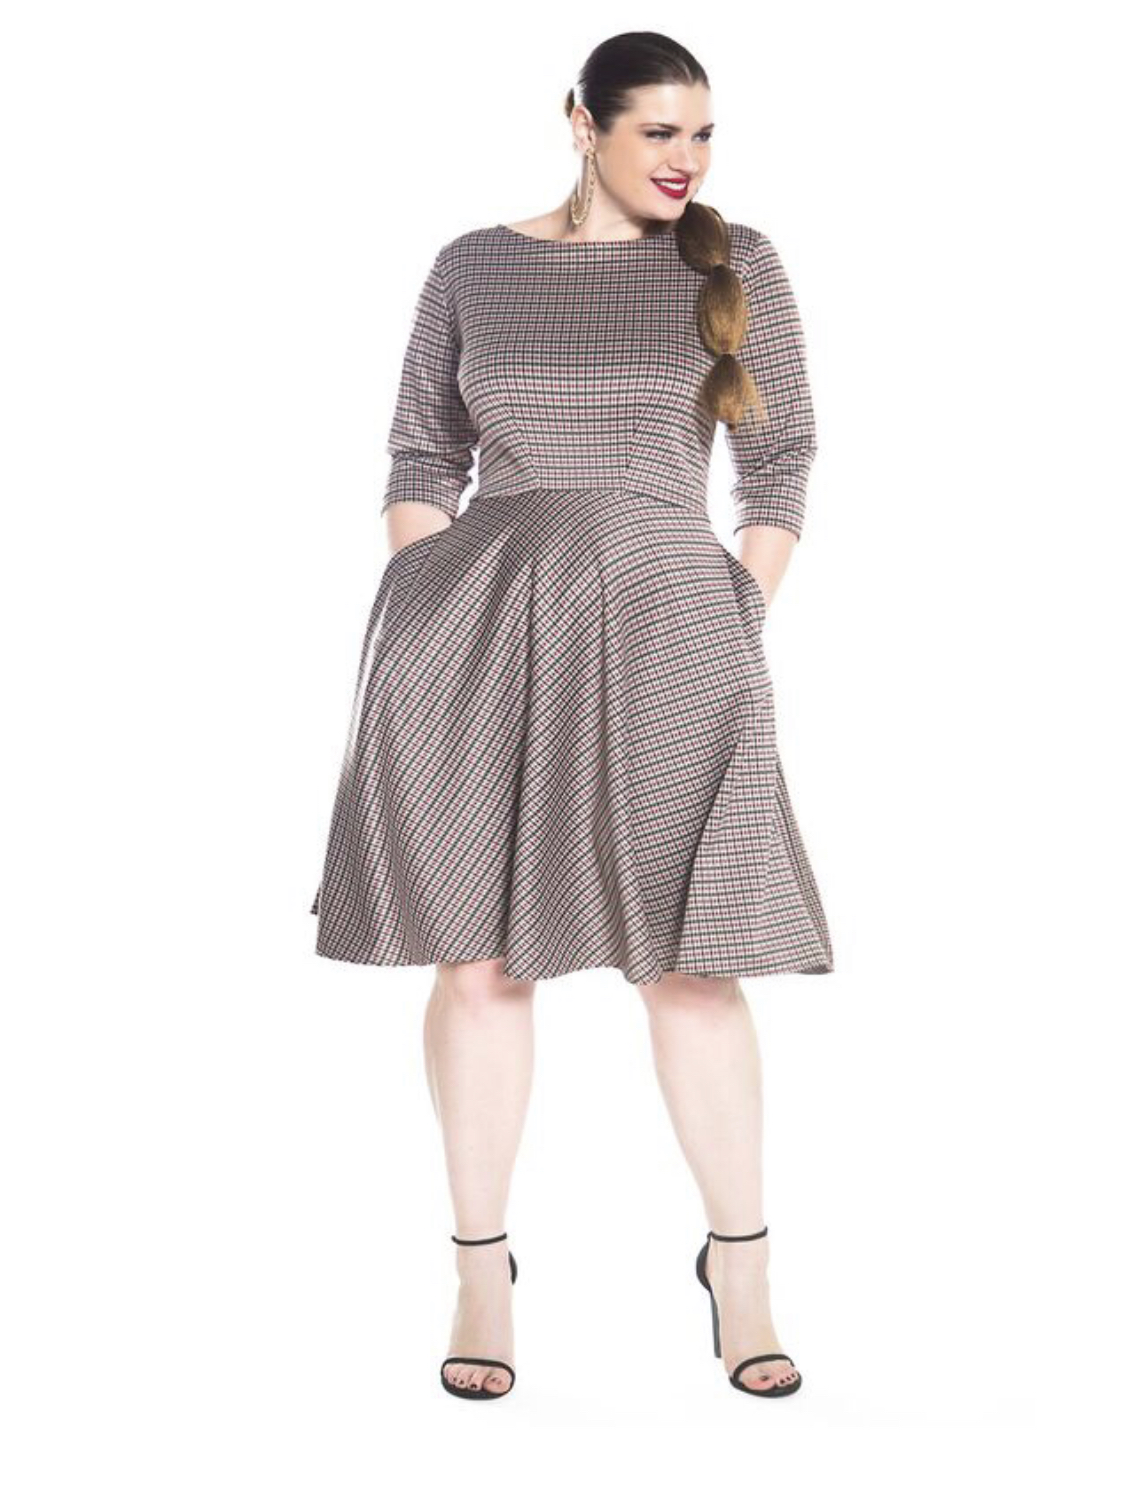 Jibri classic plaid swing dress, $230. Jibi is a great plus size brand with some gorgeous pieces. Everything is handmade in Georgia, USA, so is a little pricier than mass-produced high street fare and takes a little longer to ship, but it's worth it. Jibri will ship internationally, which takes about 1-3 weeks.